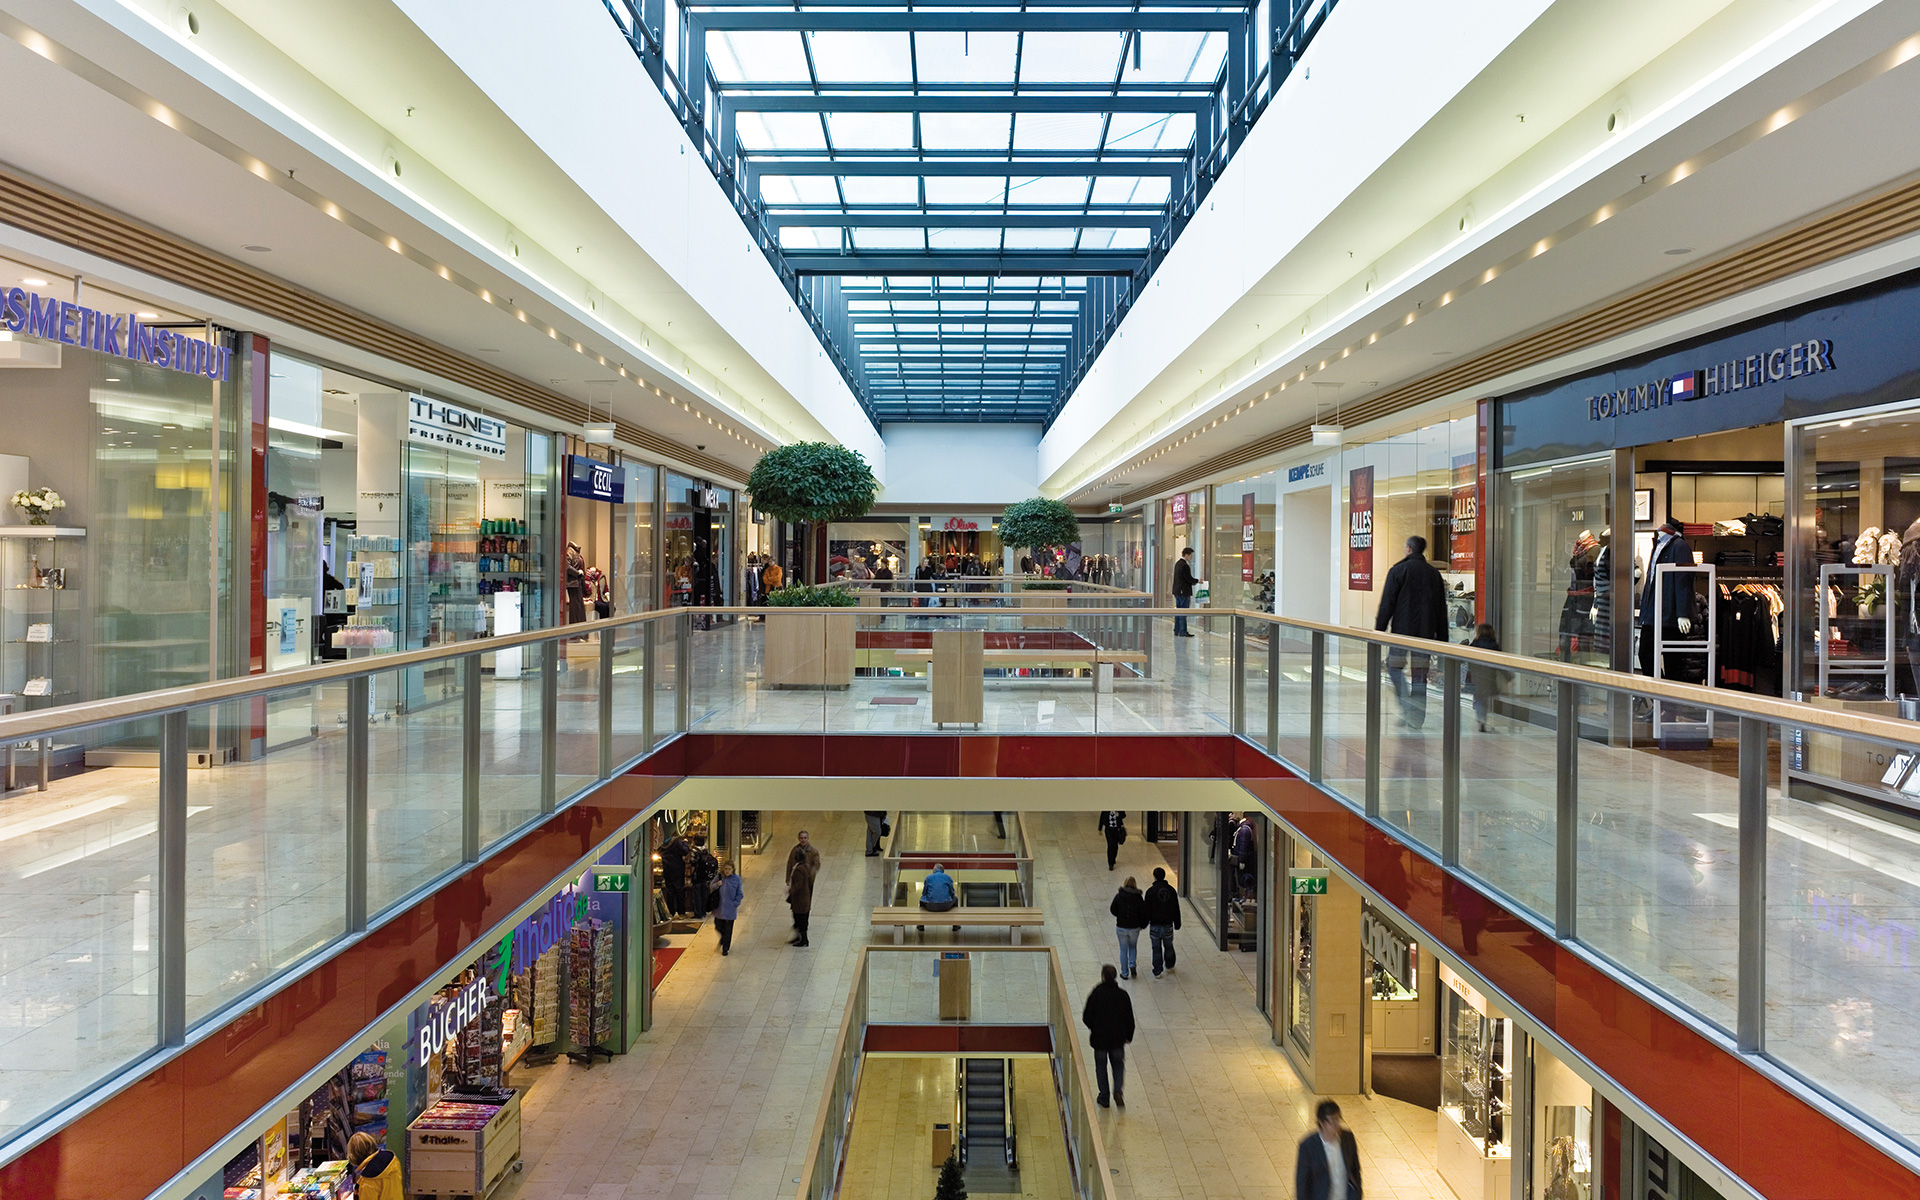 Trier Galerie. Shopping Mall in Trier